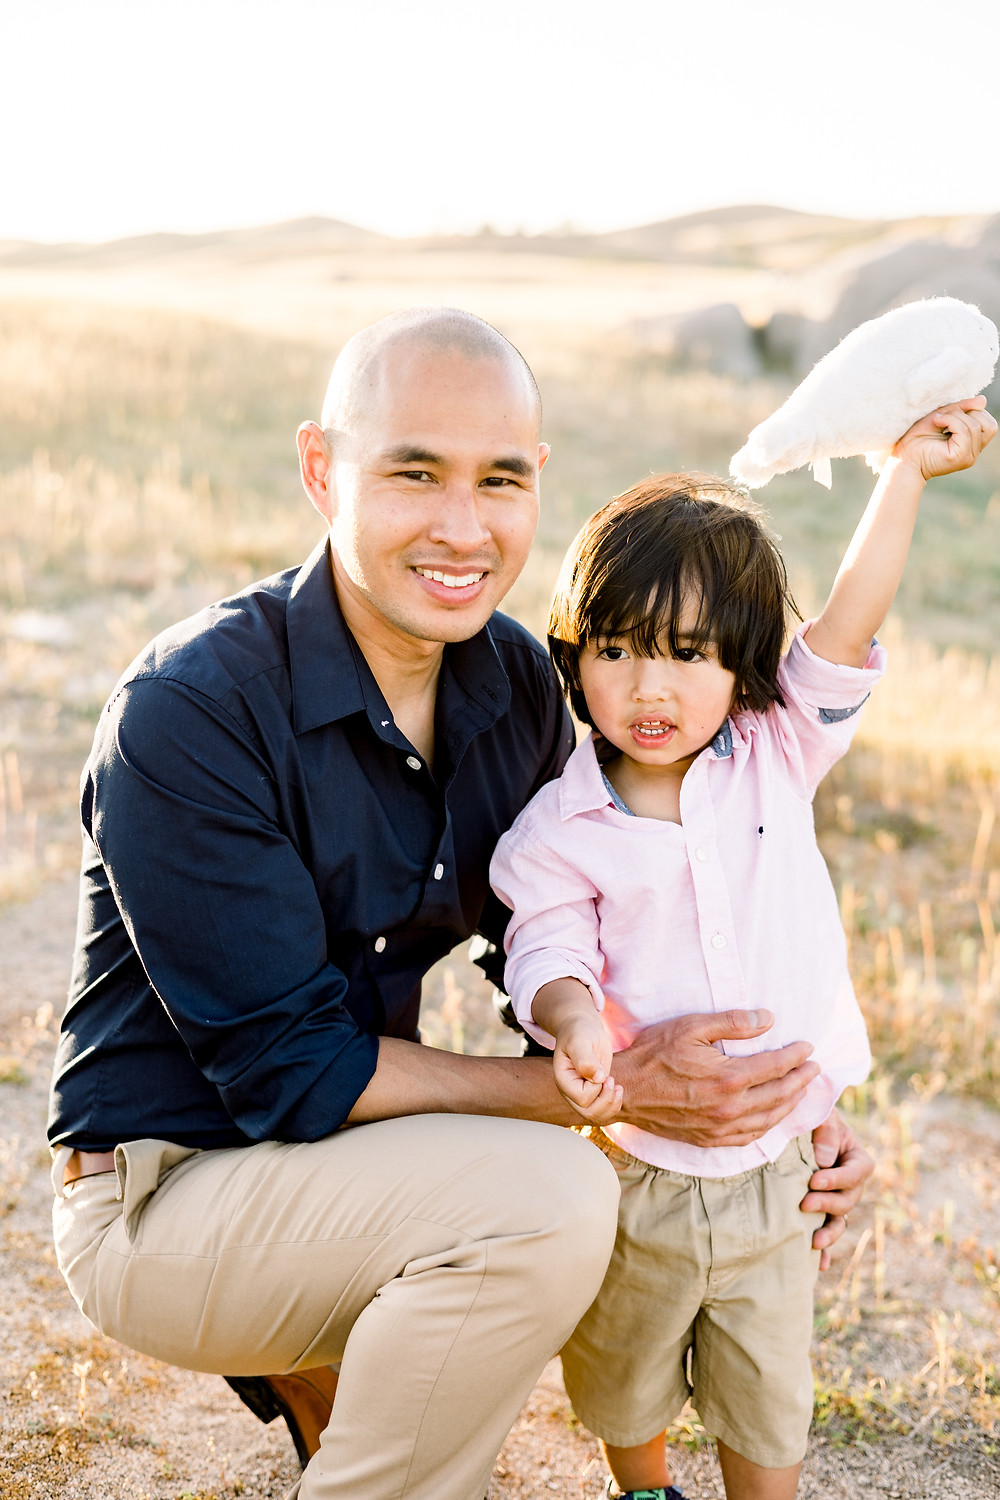 Family photo session in Clovis, CA by Ashley Norton Photography.